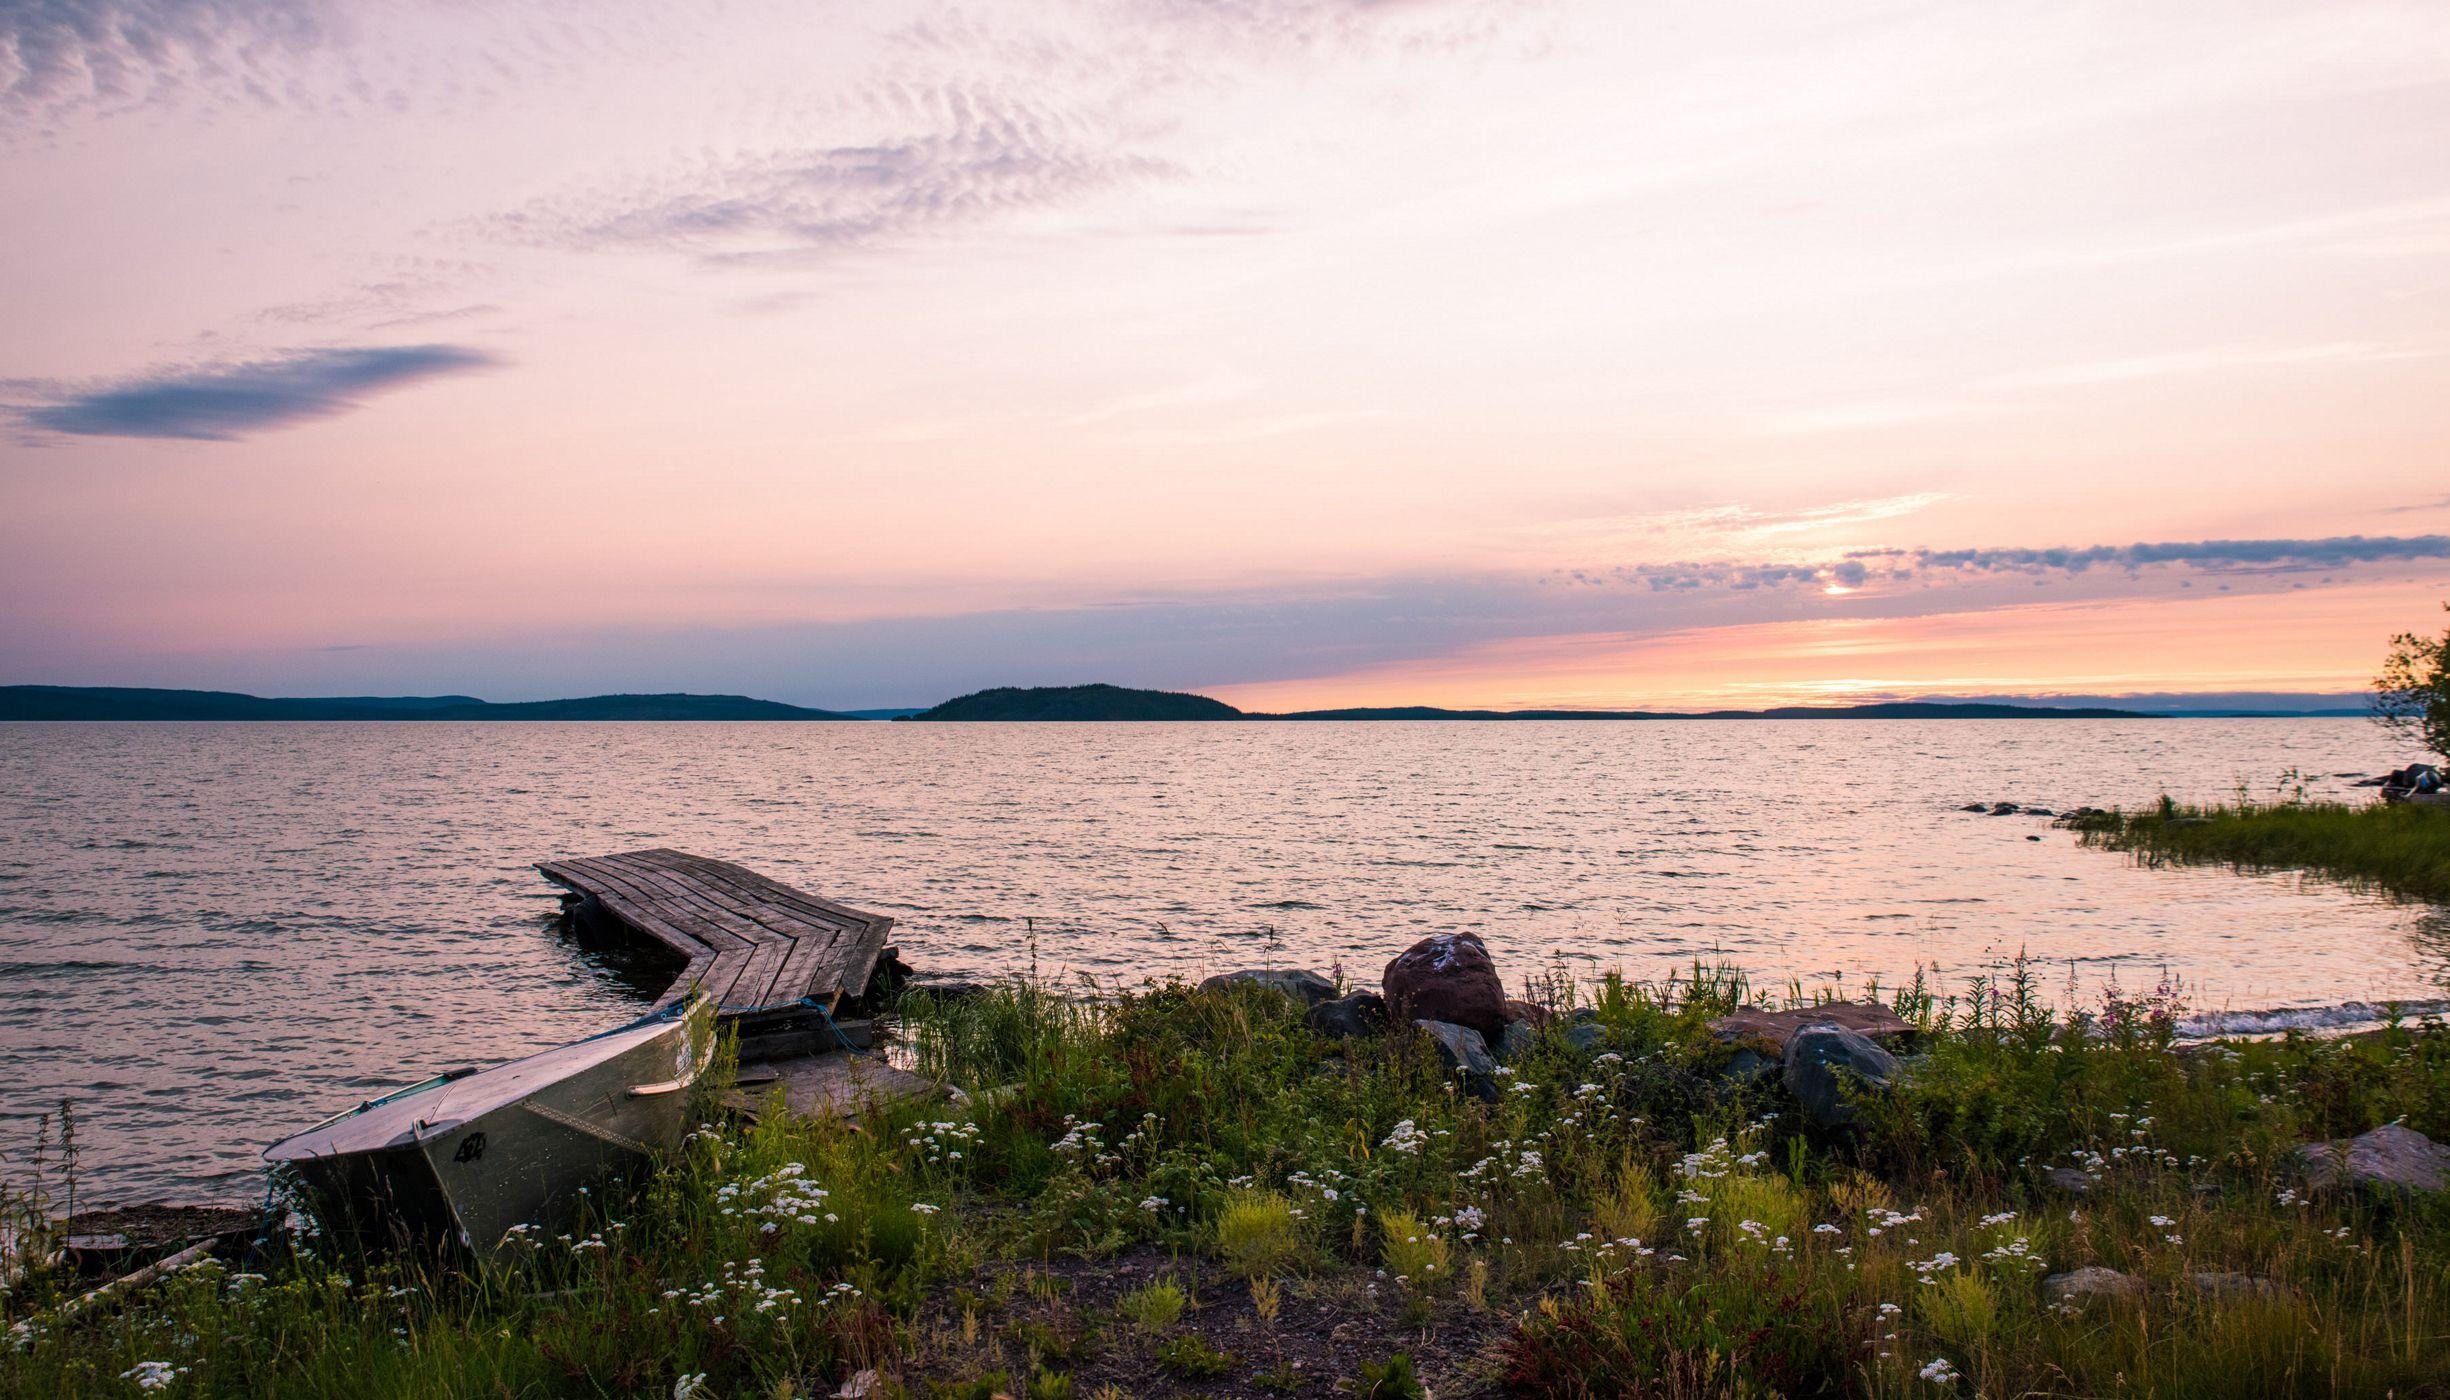 dock on lakeshore blooming with wildflowers at sunset